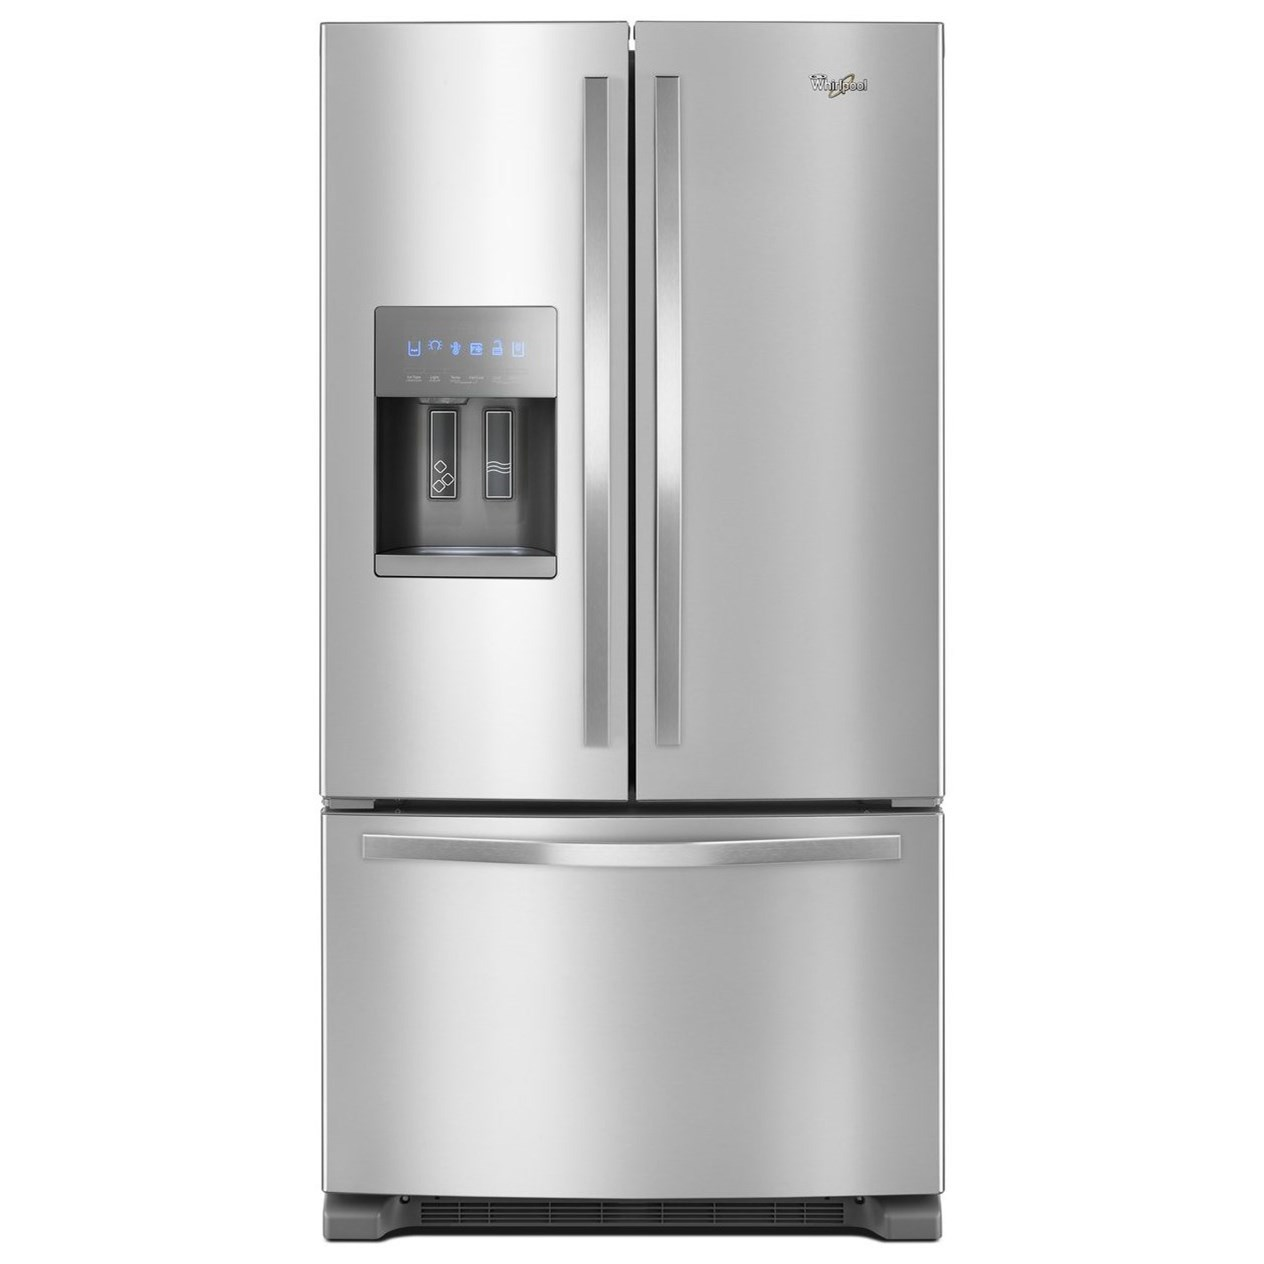 French Door Refrigerators 36-inch Wide French Door Refrigerator by Whirlpool at Furniture Fair - North Carolina